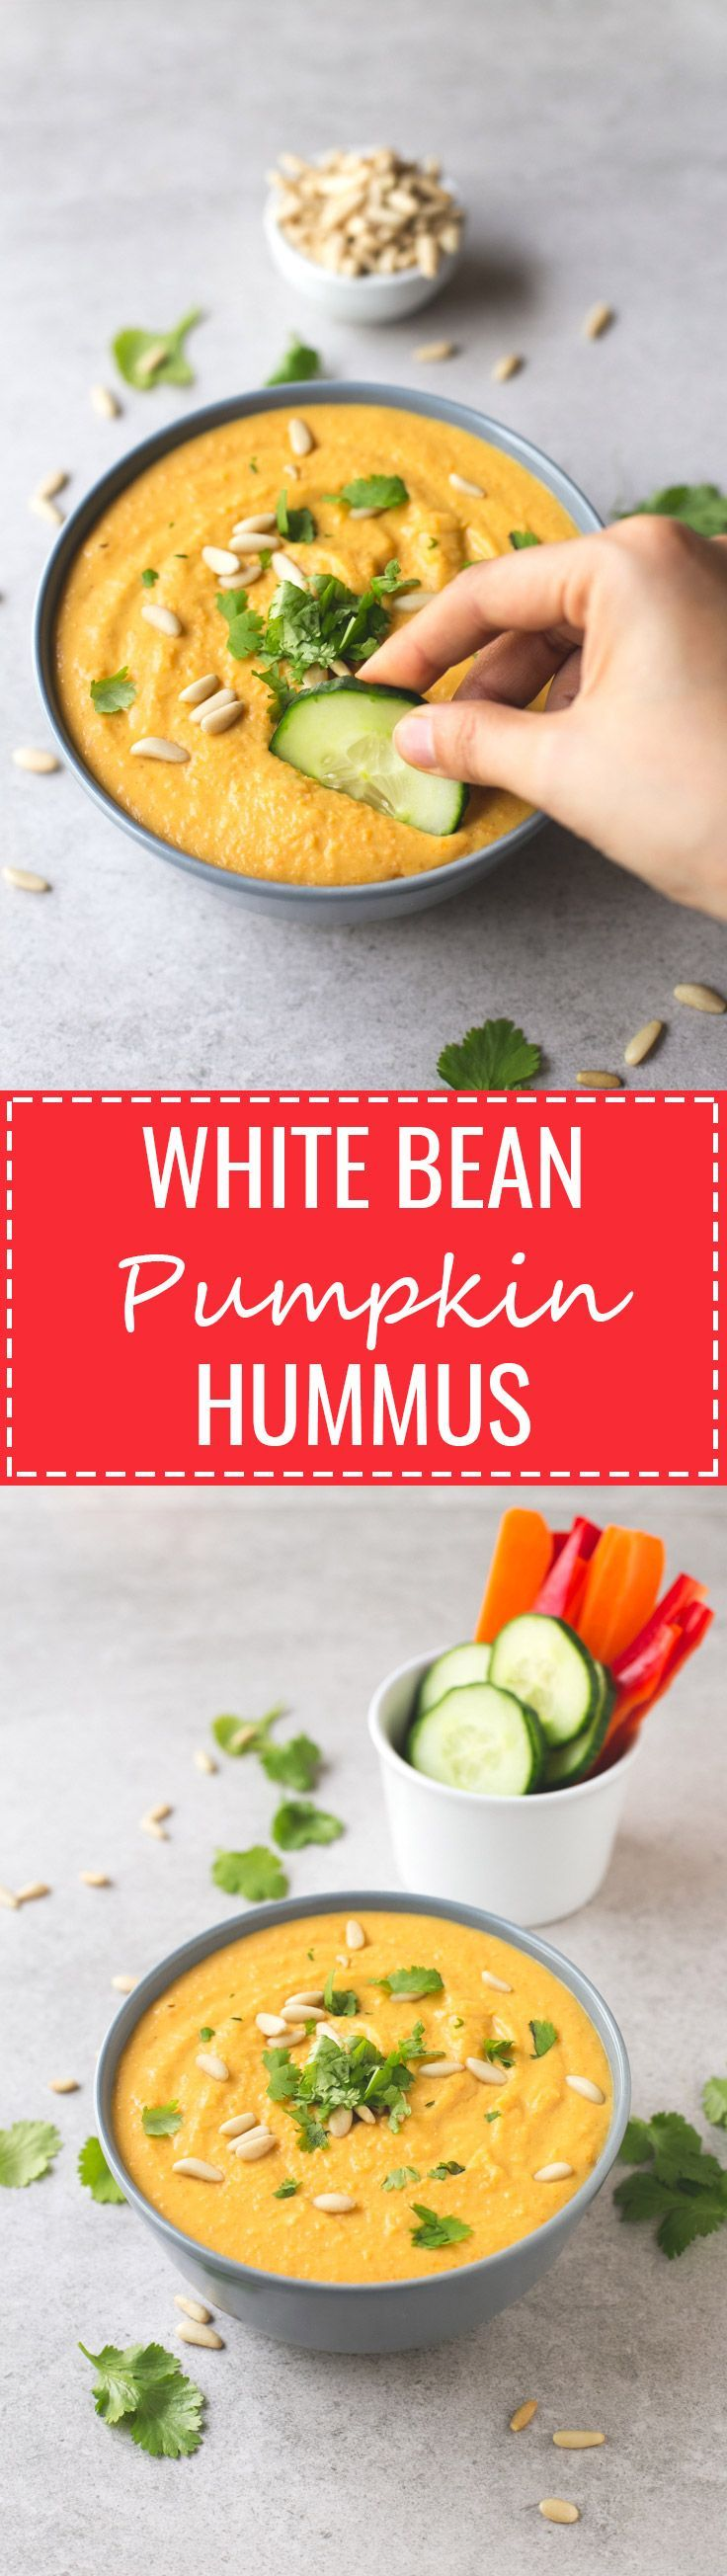 White Bean Pumpkin Hummus - I've always made hummus with chickpeas, but the other day I used cannellini beans instead and also added pumpkin. It's less thick, but SO GOOD!